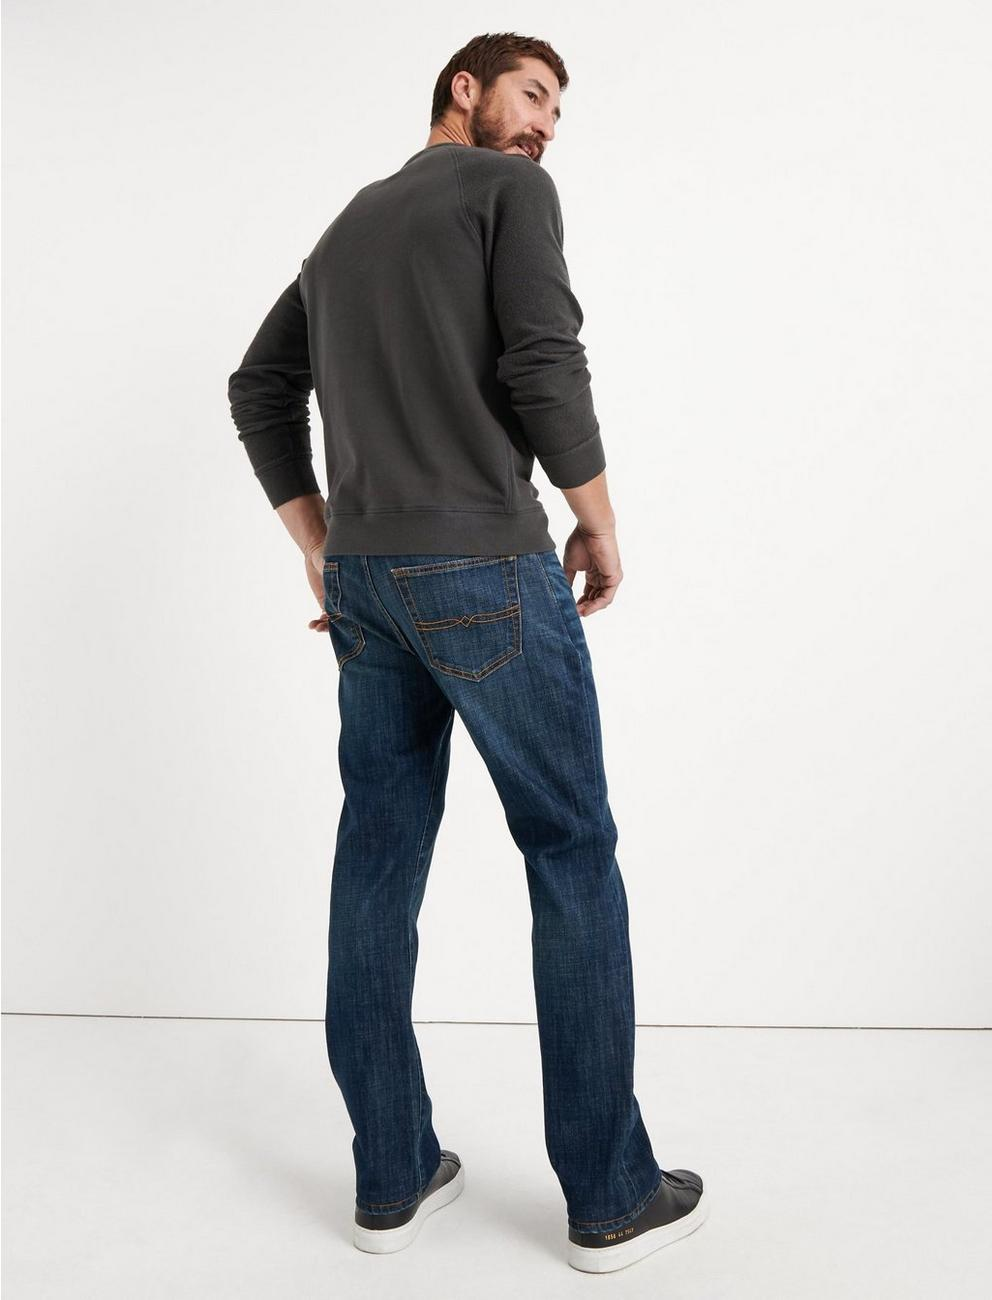 410 ATHLETIC FIT JEAN, NOVATO